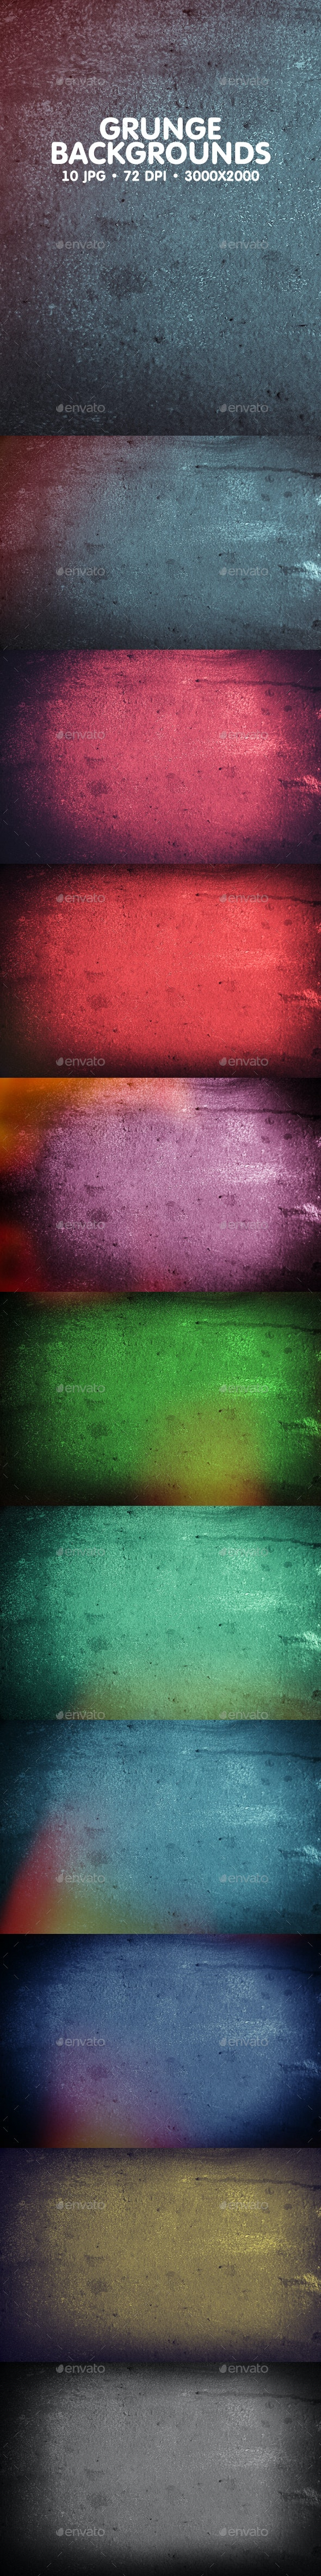 10 Grunge Backgrounds - Abstract Backgrounds